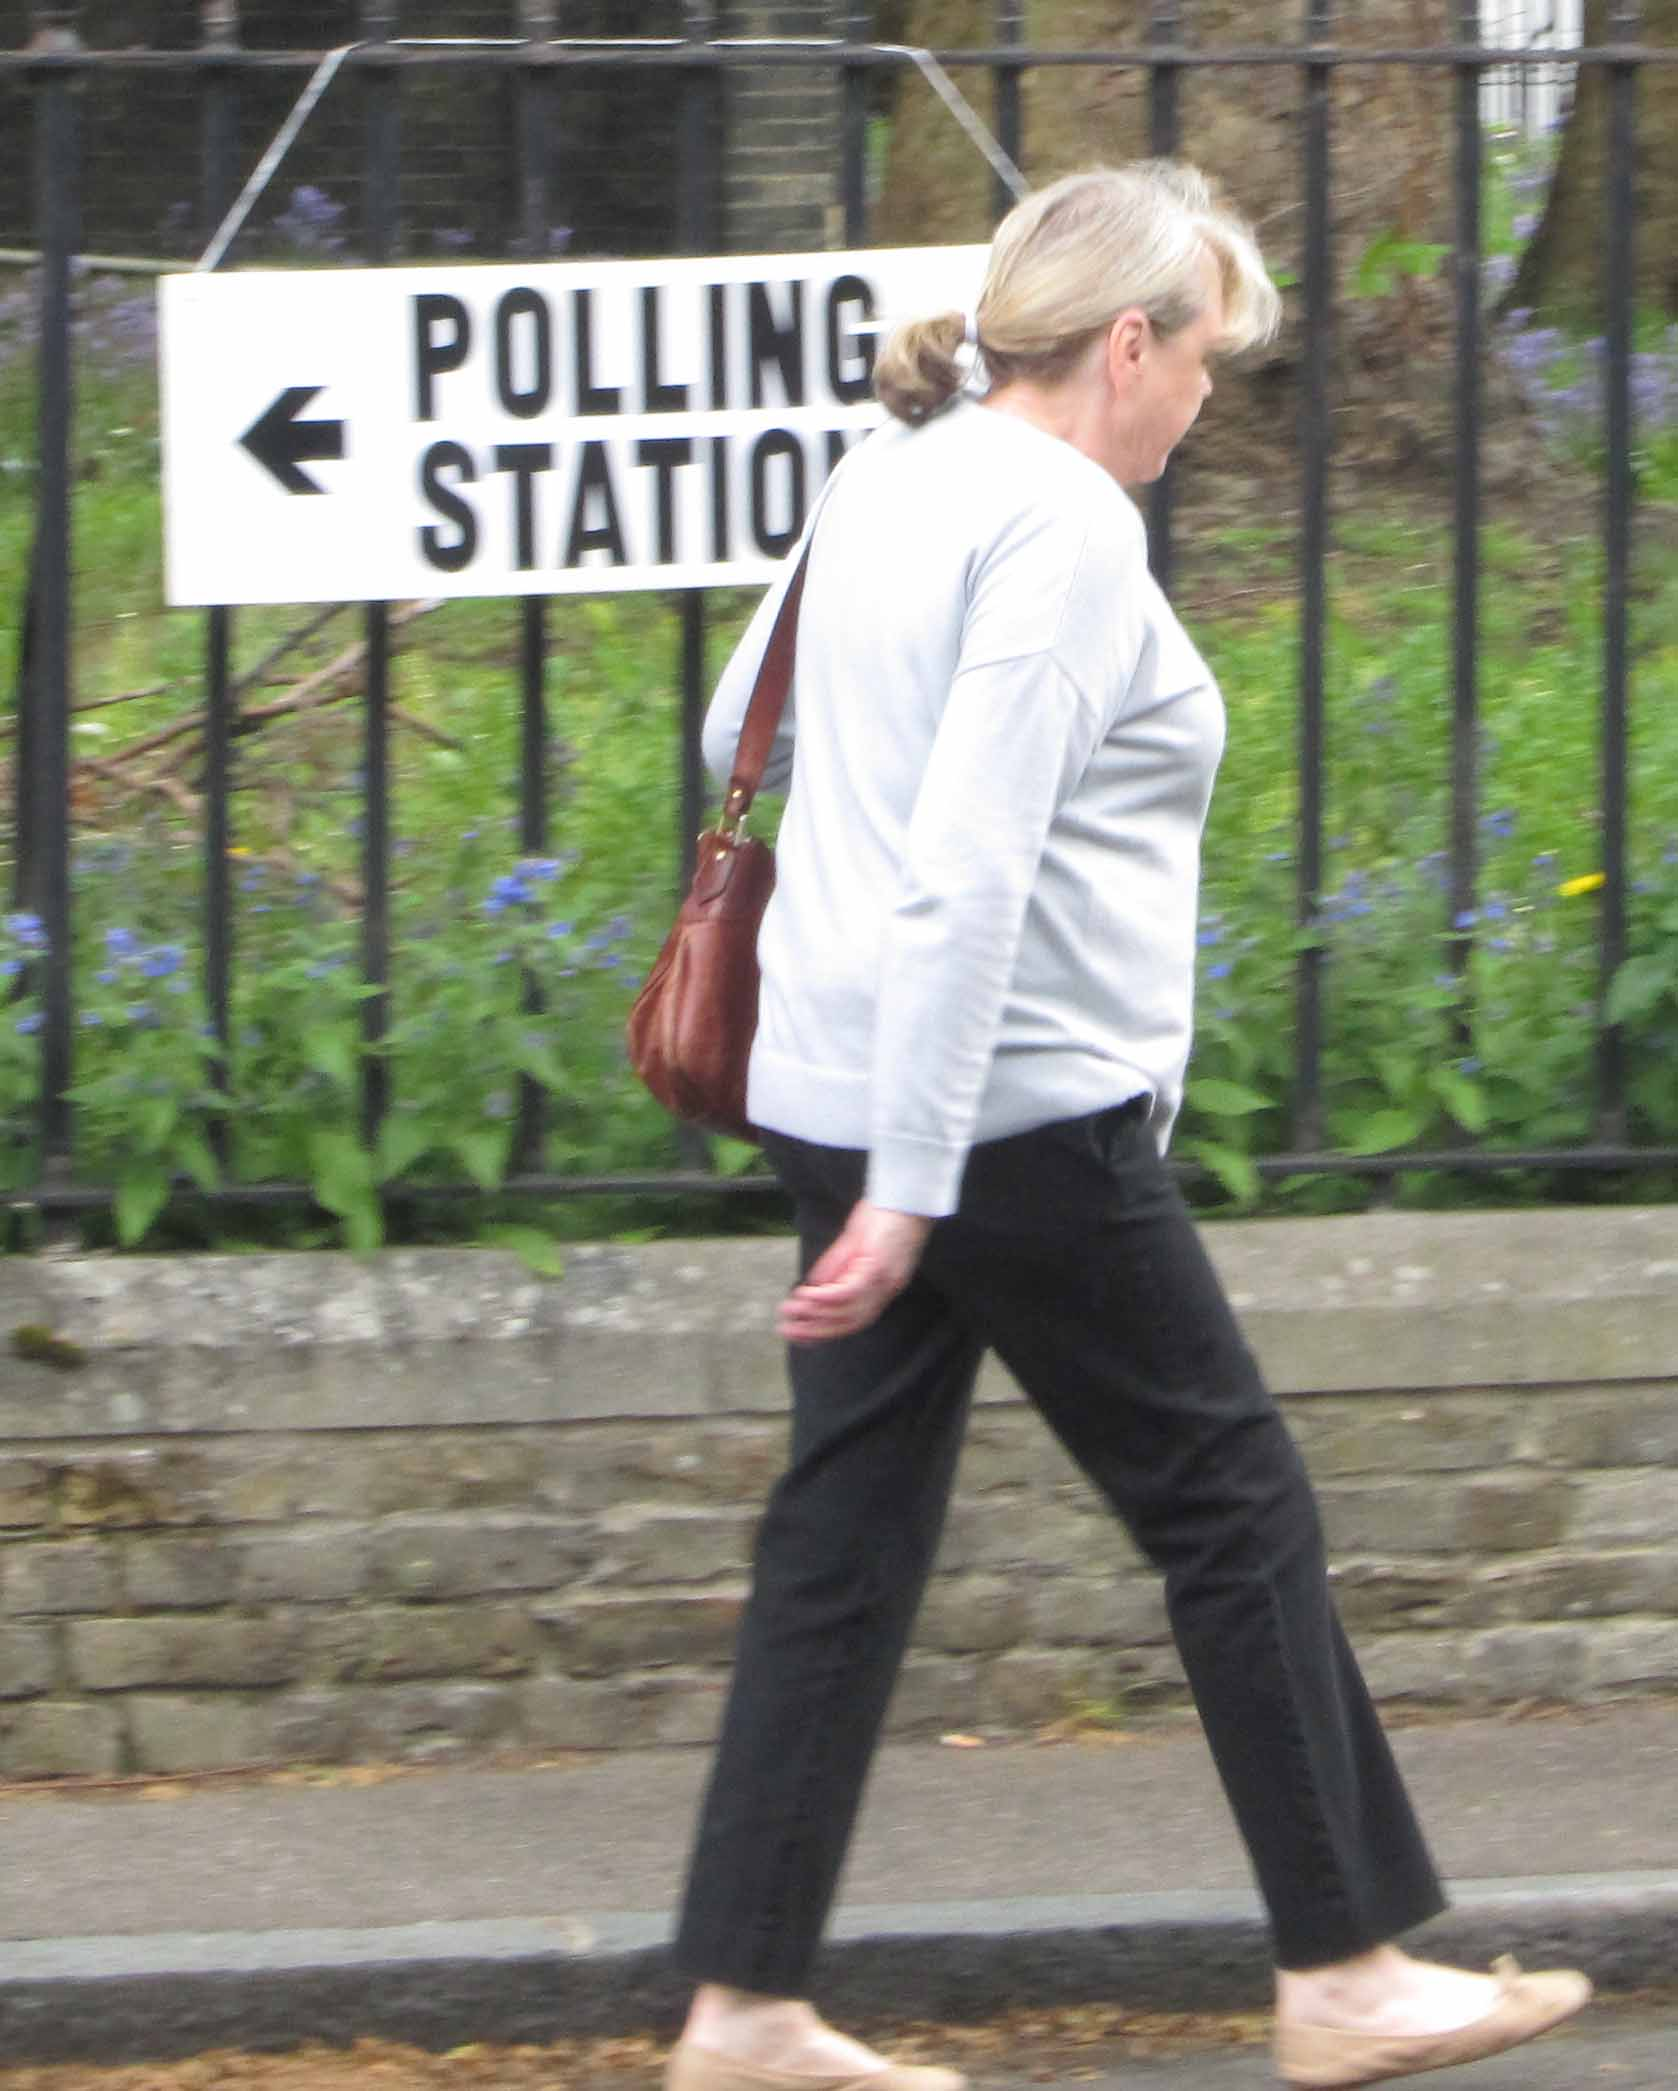 Polling Day 2